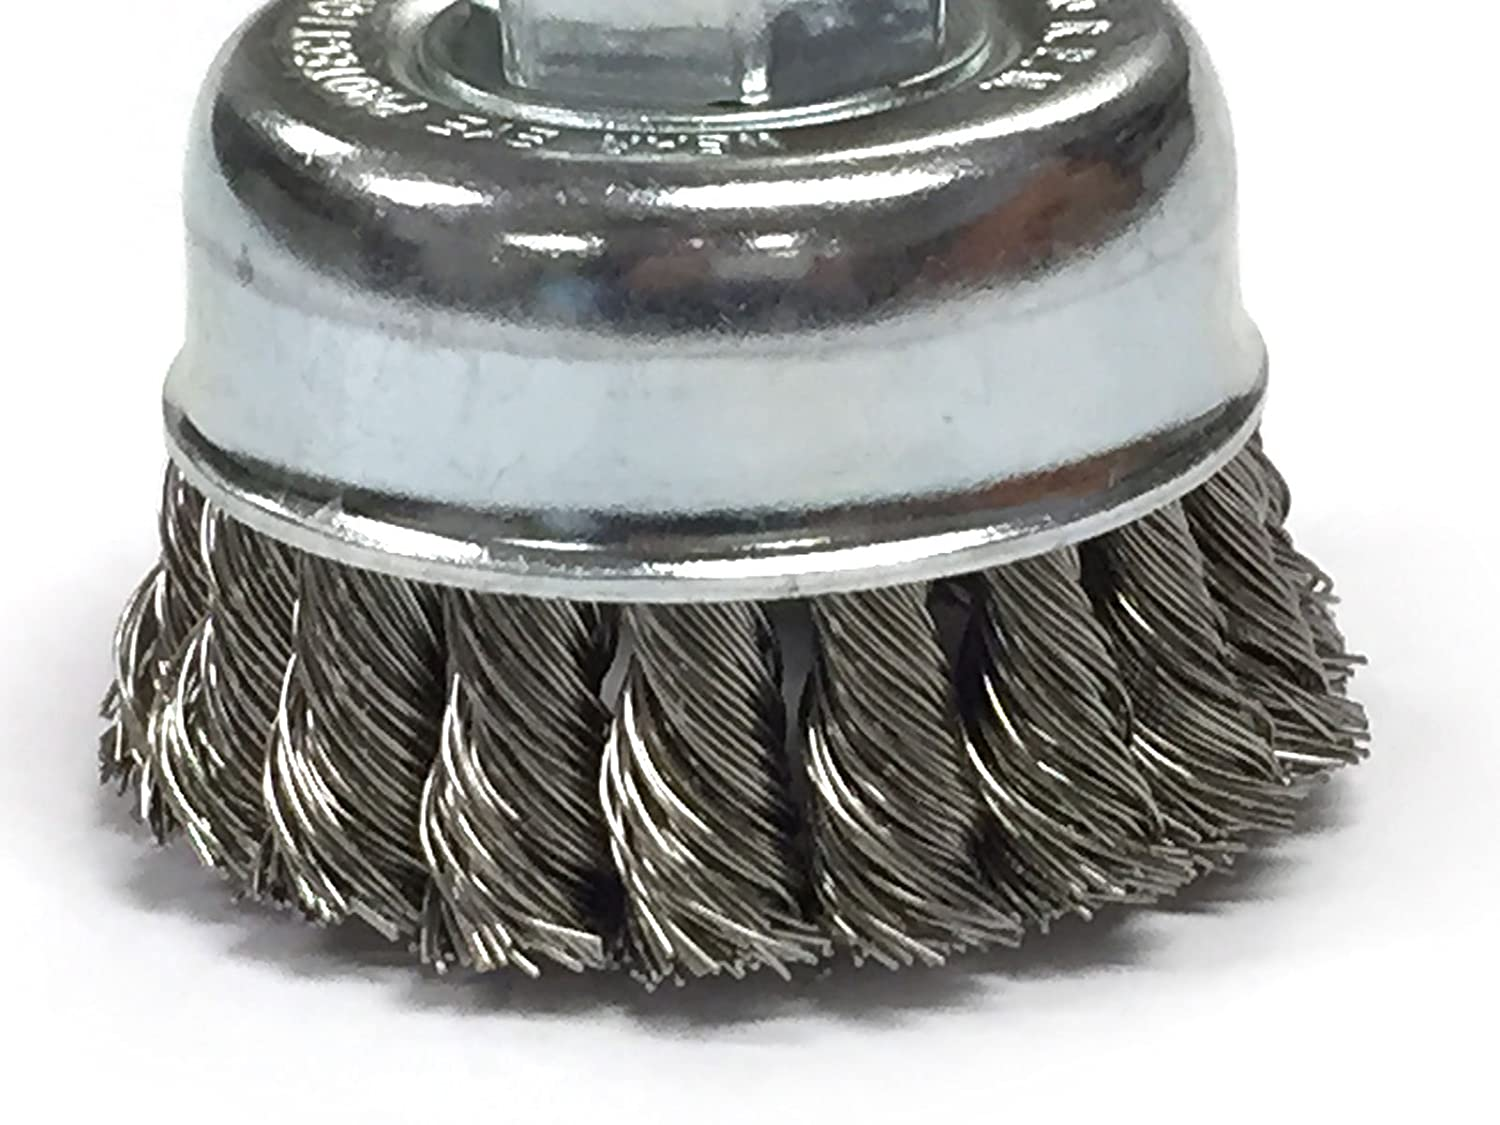 2-3/4' Knotted Cup Brush With 5/8-11 Inch Arbor - Stainless Steel Wire